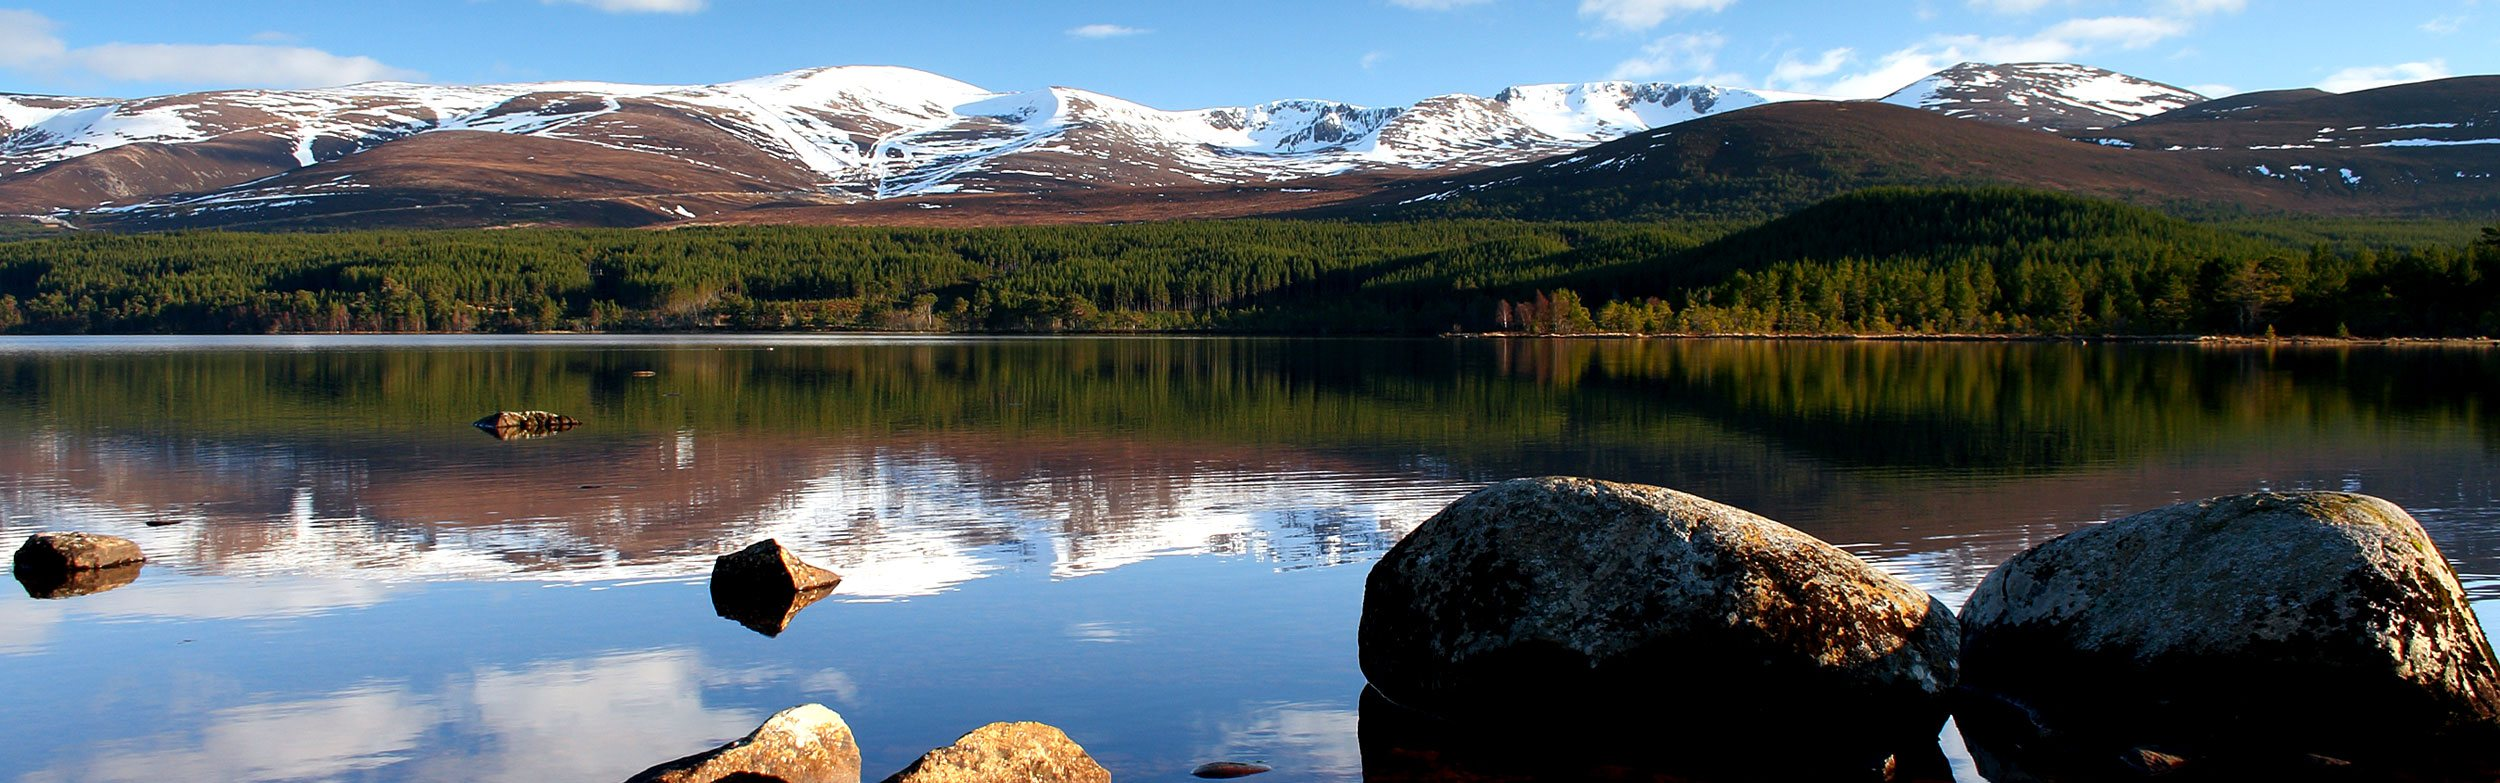 cairngorms stunning scenery